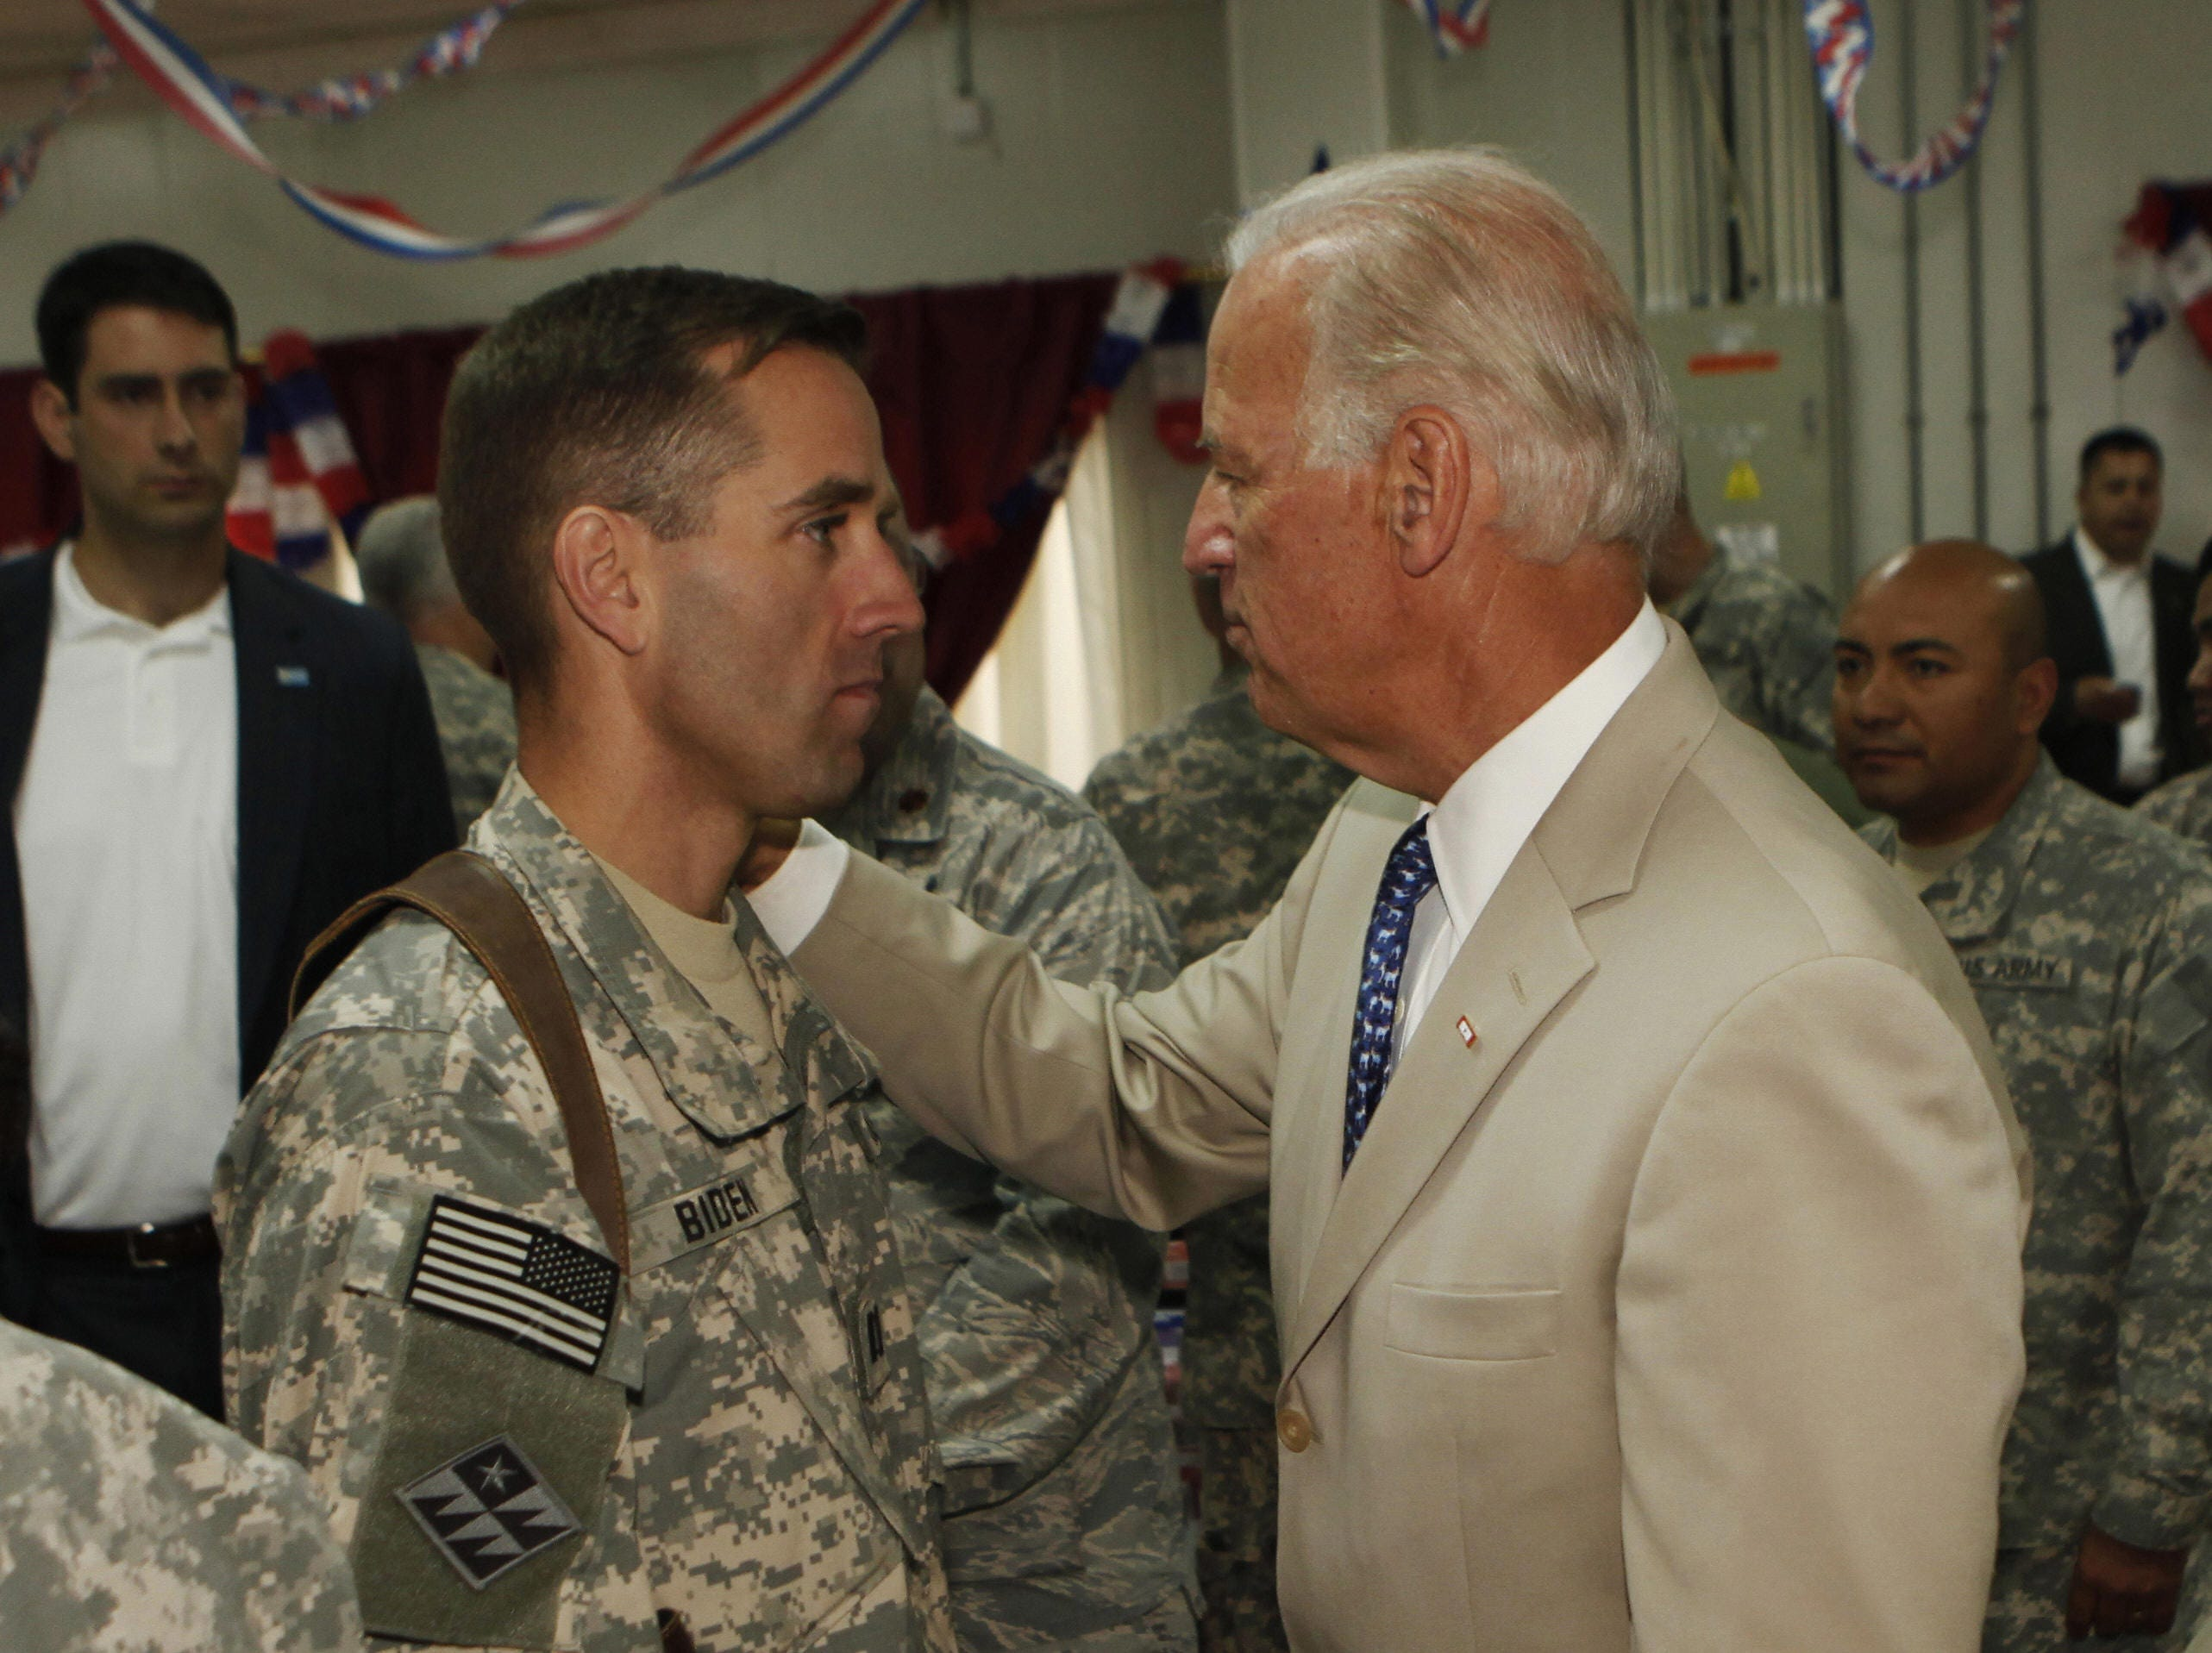 If Biden were president, he'd be in minority with no military service